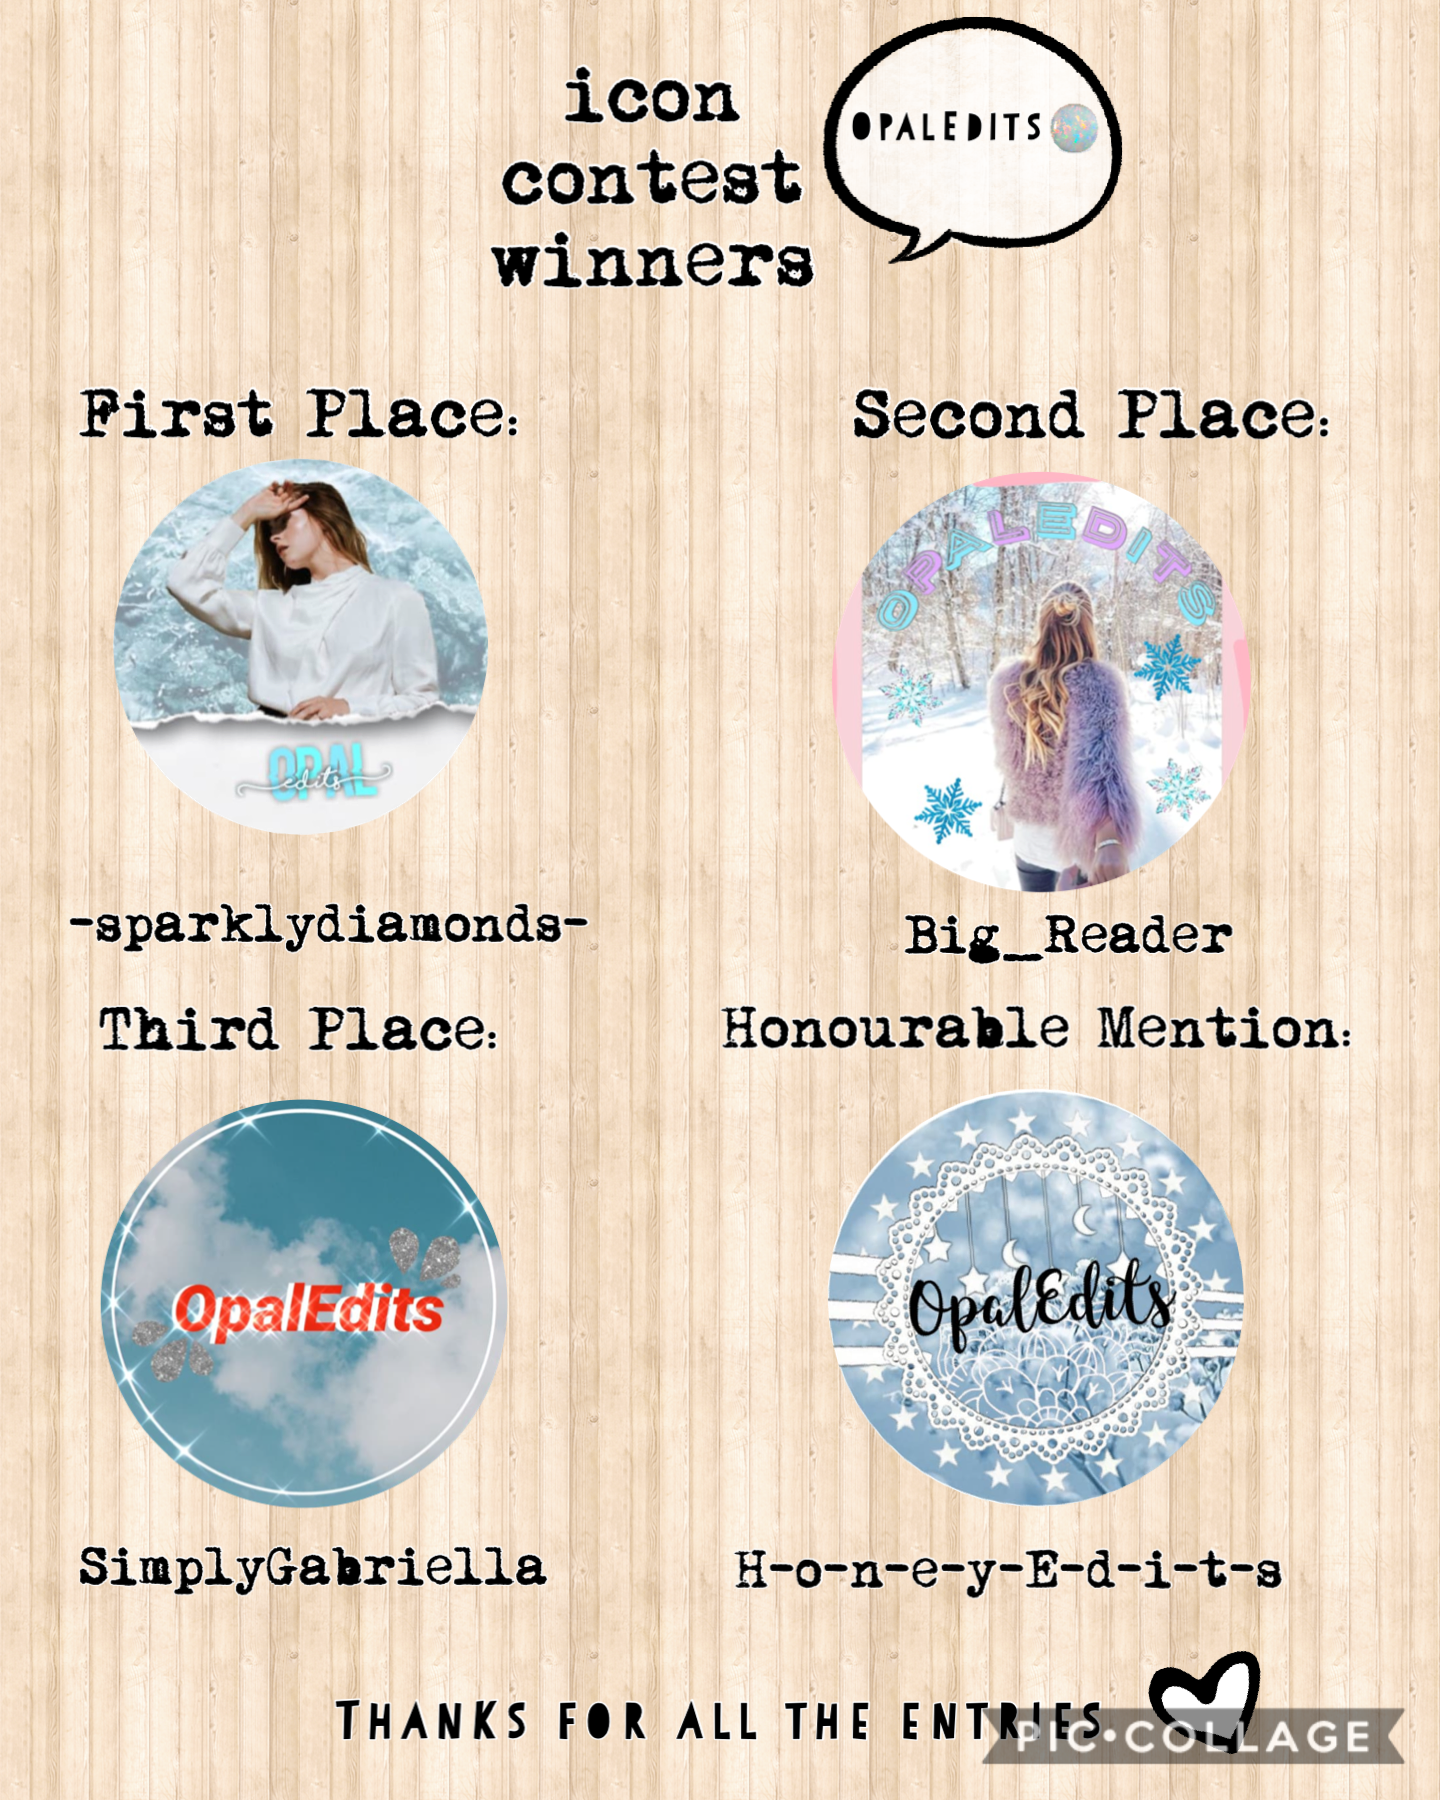 Opal Edits Icon Contest Results Did U Place?